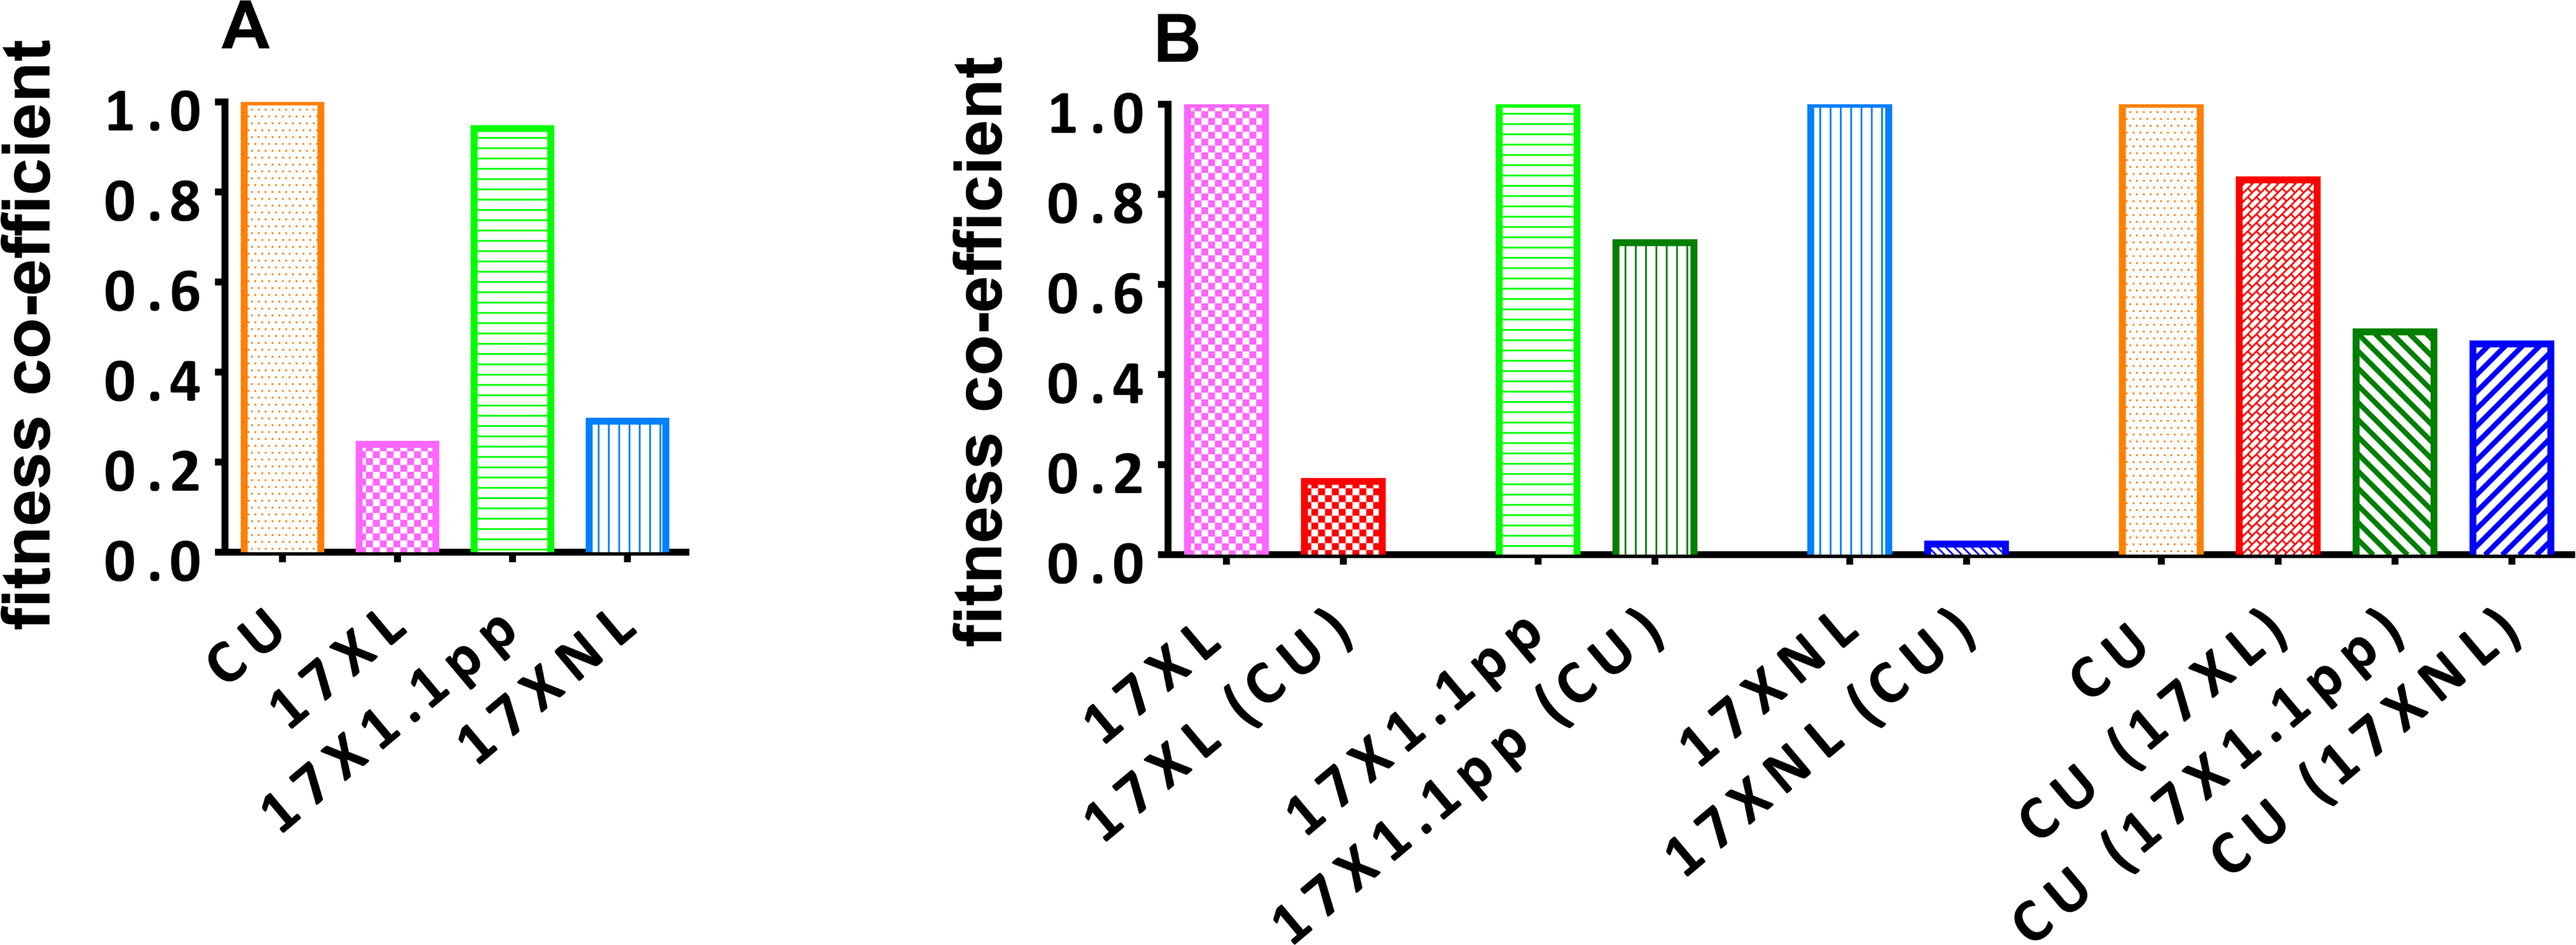 Relative fitness of avirulent (CU and 17XNL), intermediately virulent (17X1.1pp) and virulent (17XL) strains of <i>Plasmodium yoelii yoelii</i> in single (Panel A) or in mixed (B) infections.